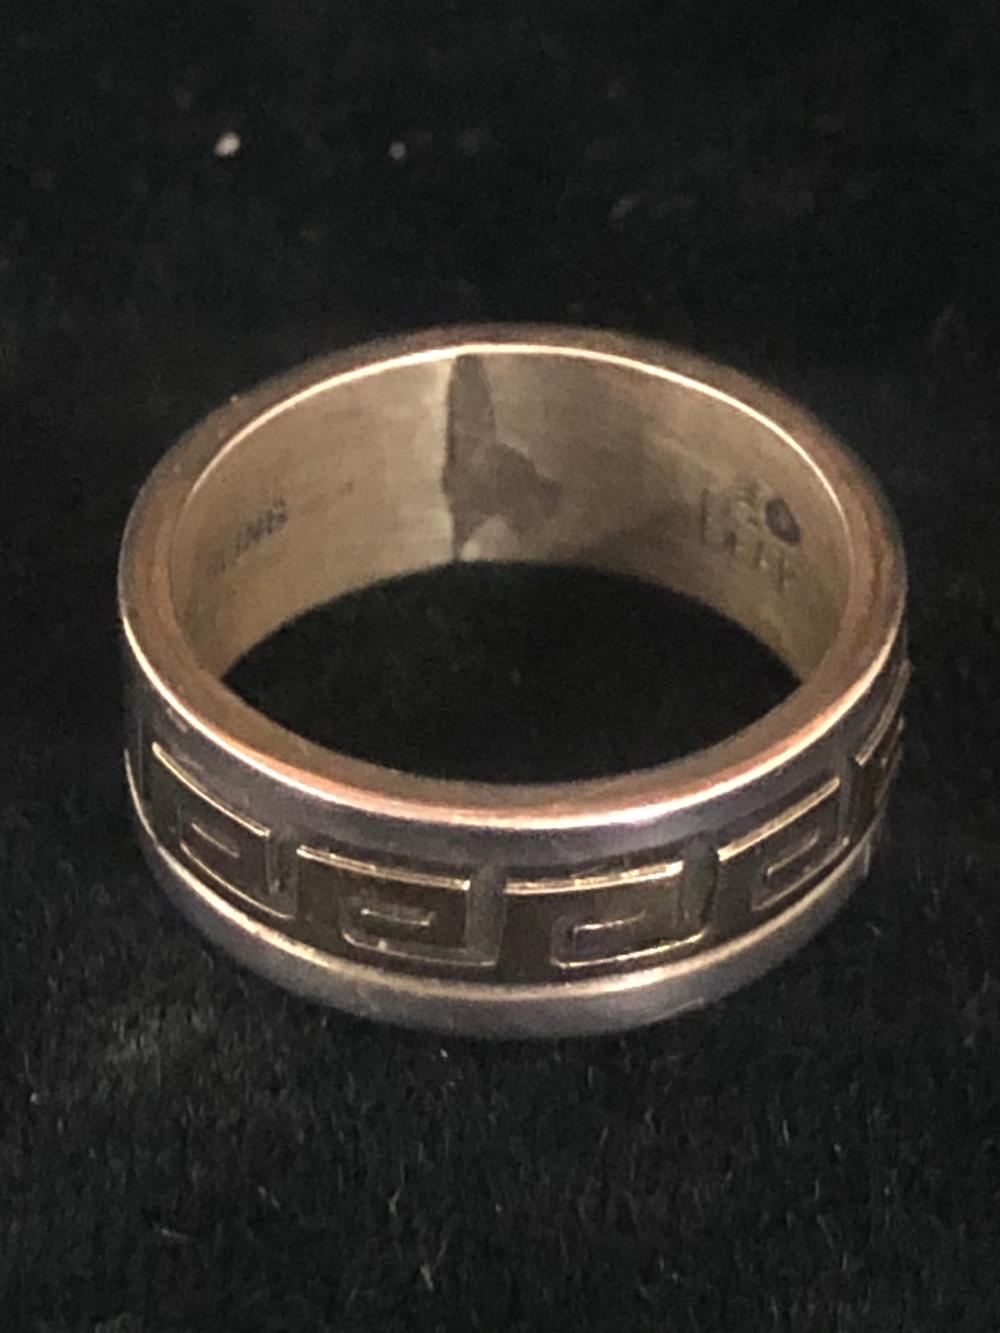 Sterling silver and 14k gold fill band ring with design